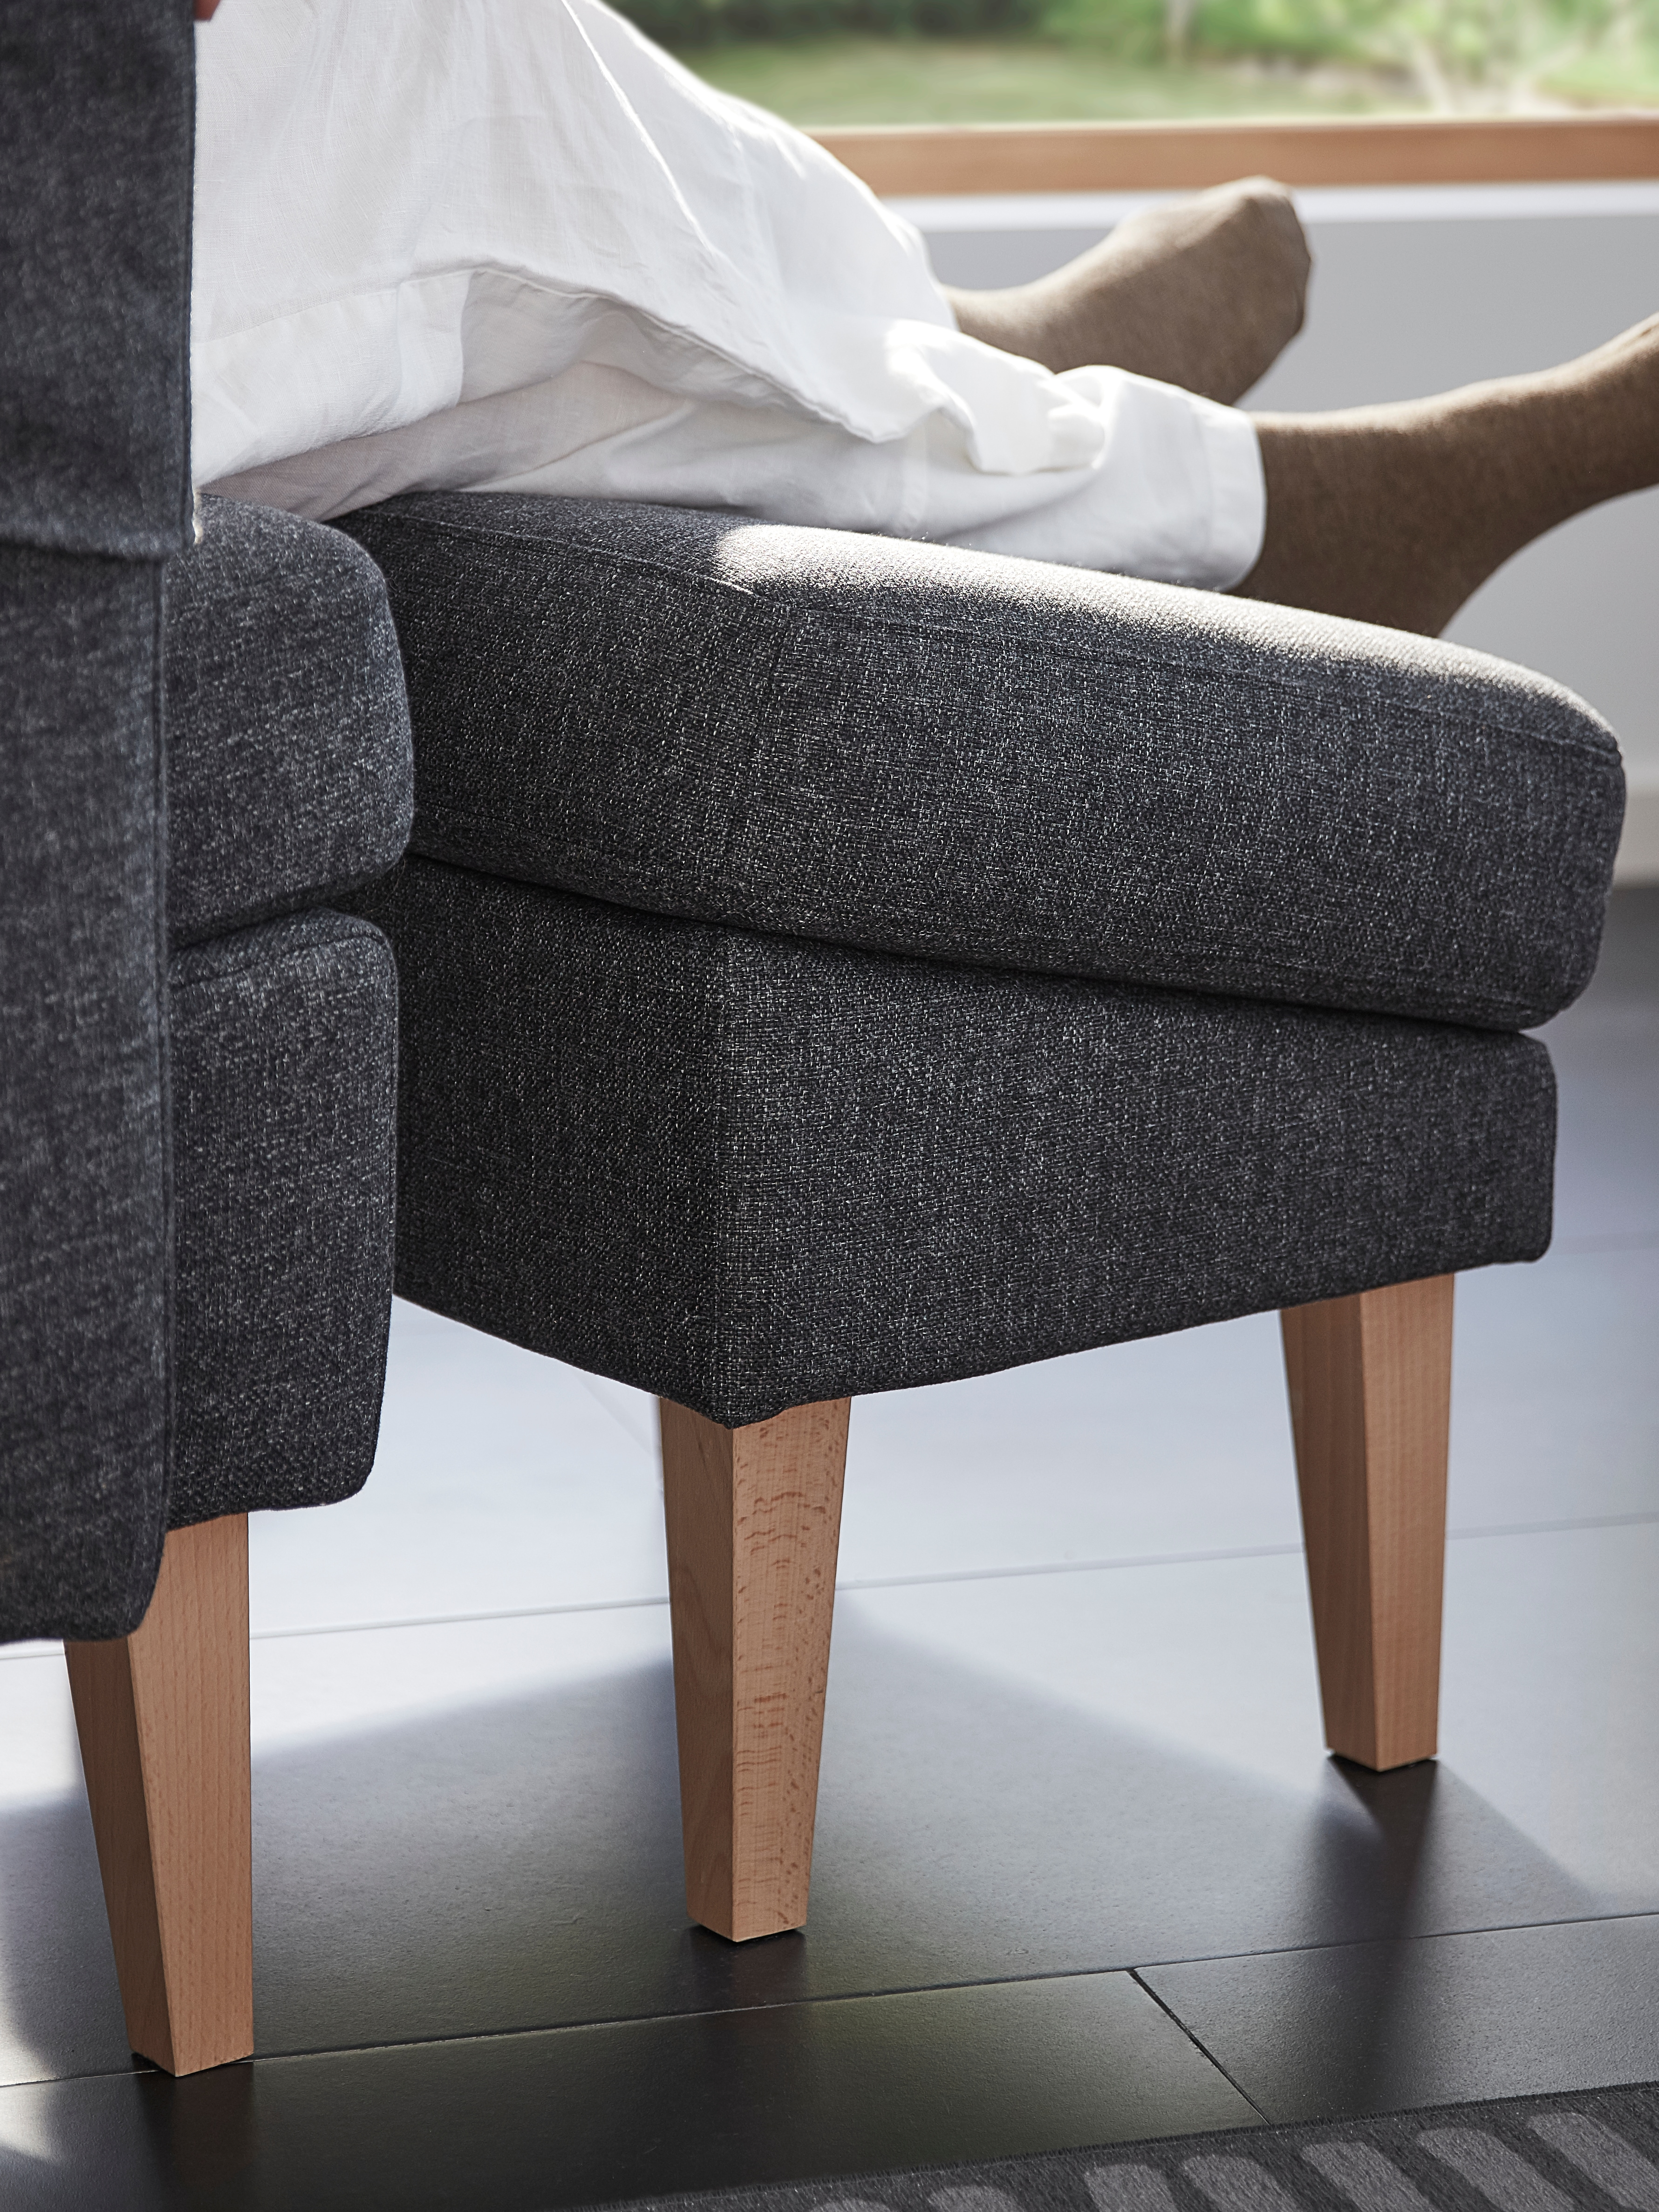 A side view of a person's legs and feet on a slanted Gunnared dark grey OMTÄNKSAM footstool beside a matching armchair.